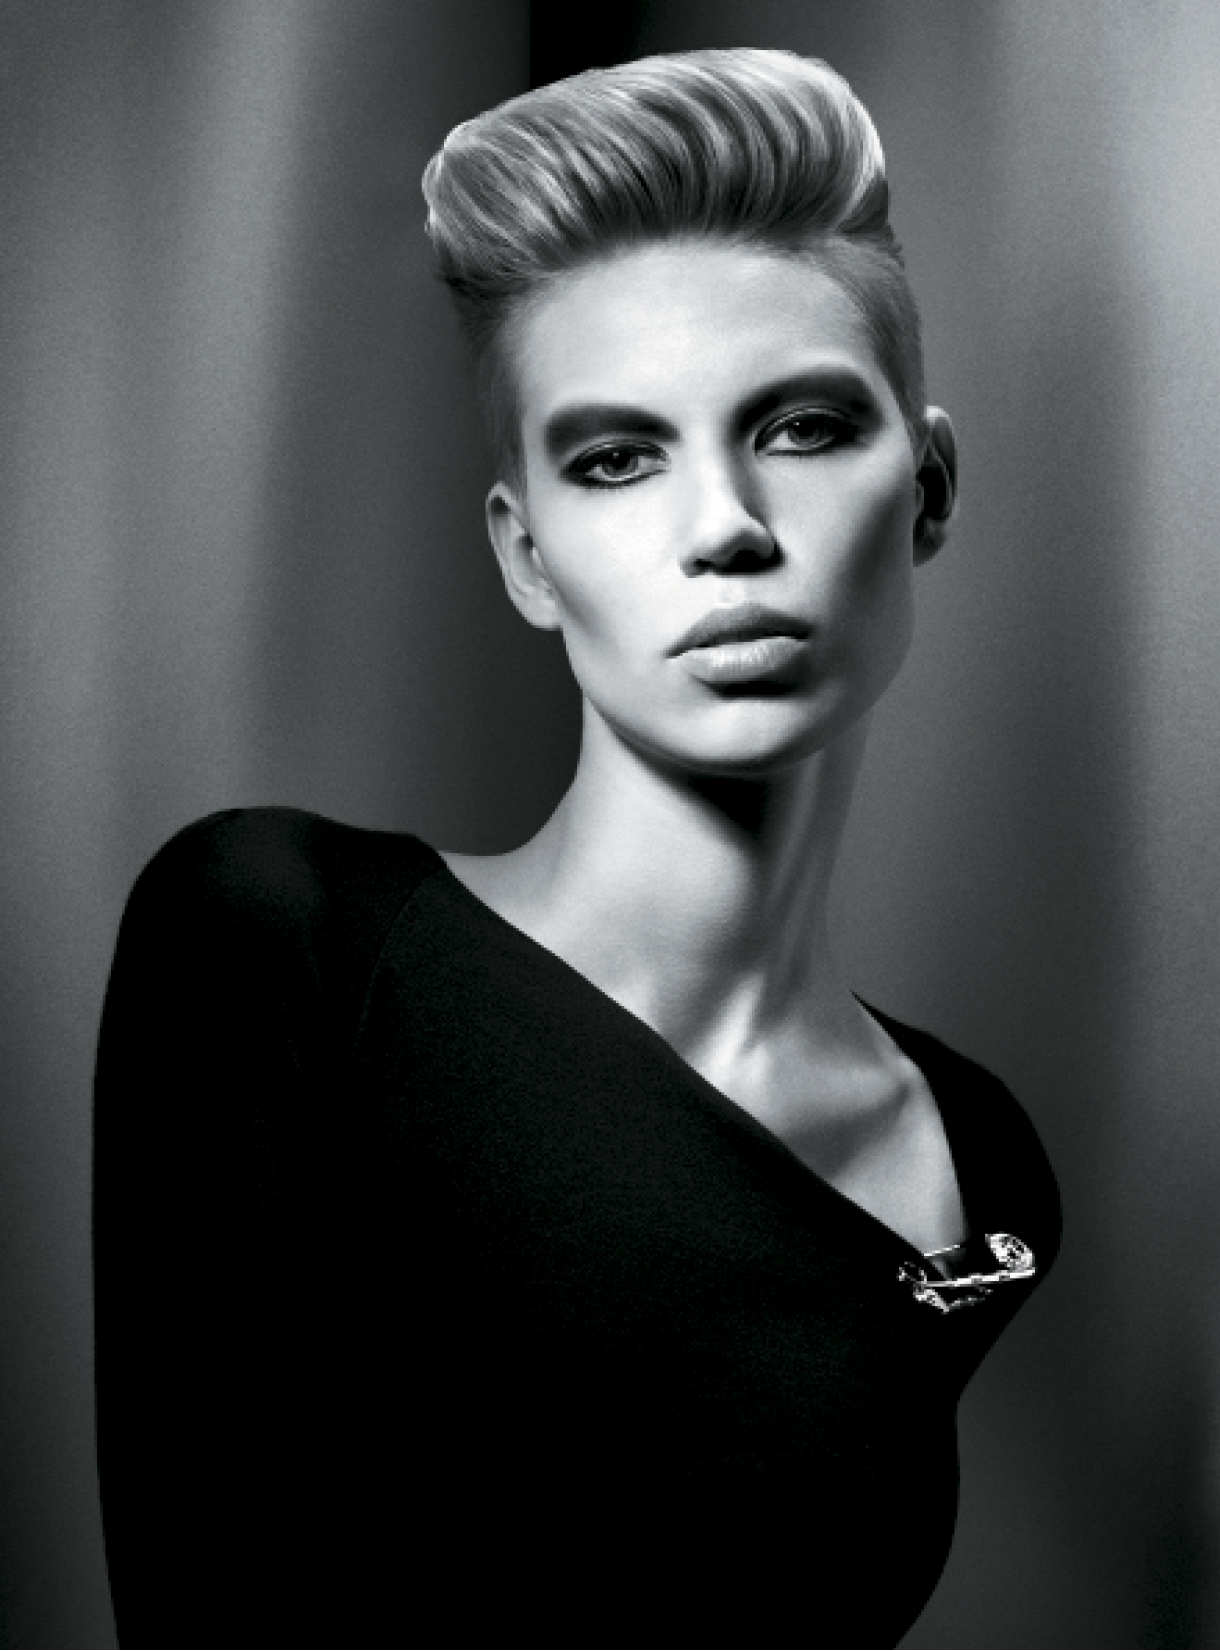 To create this take on the pompadour, Mark Leeson applied volumizing mousse to damp hair before blow-drying it with a medium radial brush to create root lift and body. Next, he used a heat protection spray and a large barrel tong to define direction and lift. To finish the look, he spritzed the hair with a light hairspray for touchable hold.